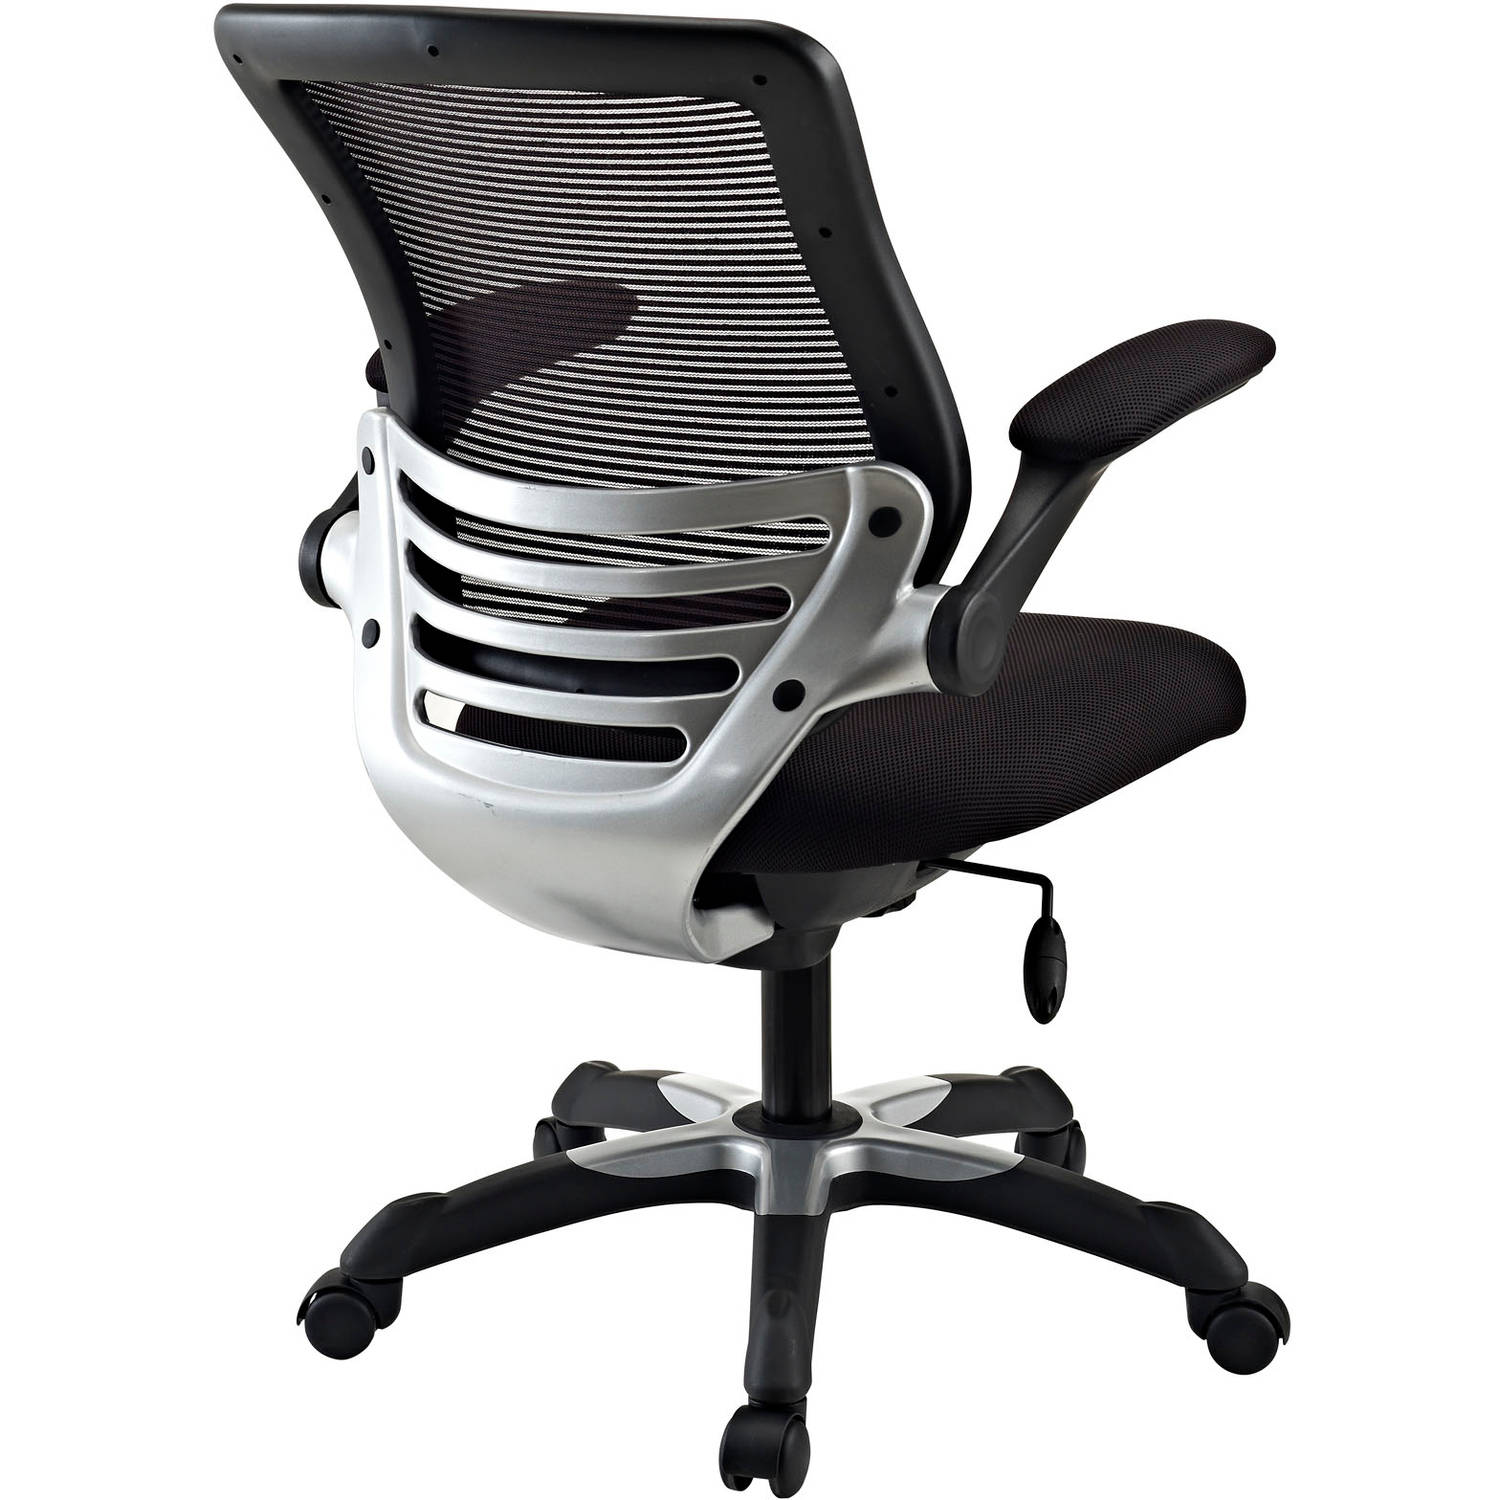 prim mid modway cfm back hayneedle product chair office